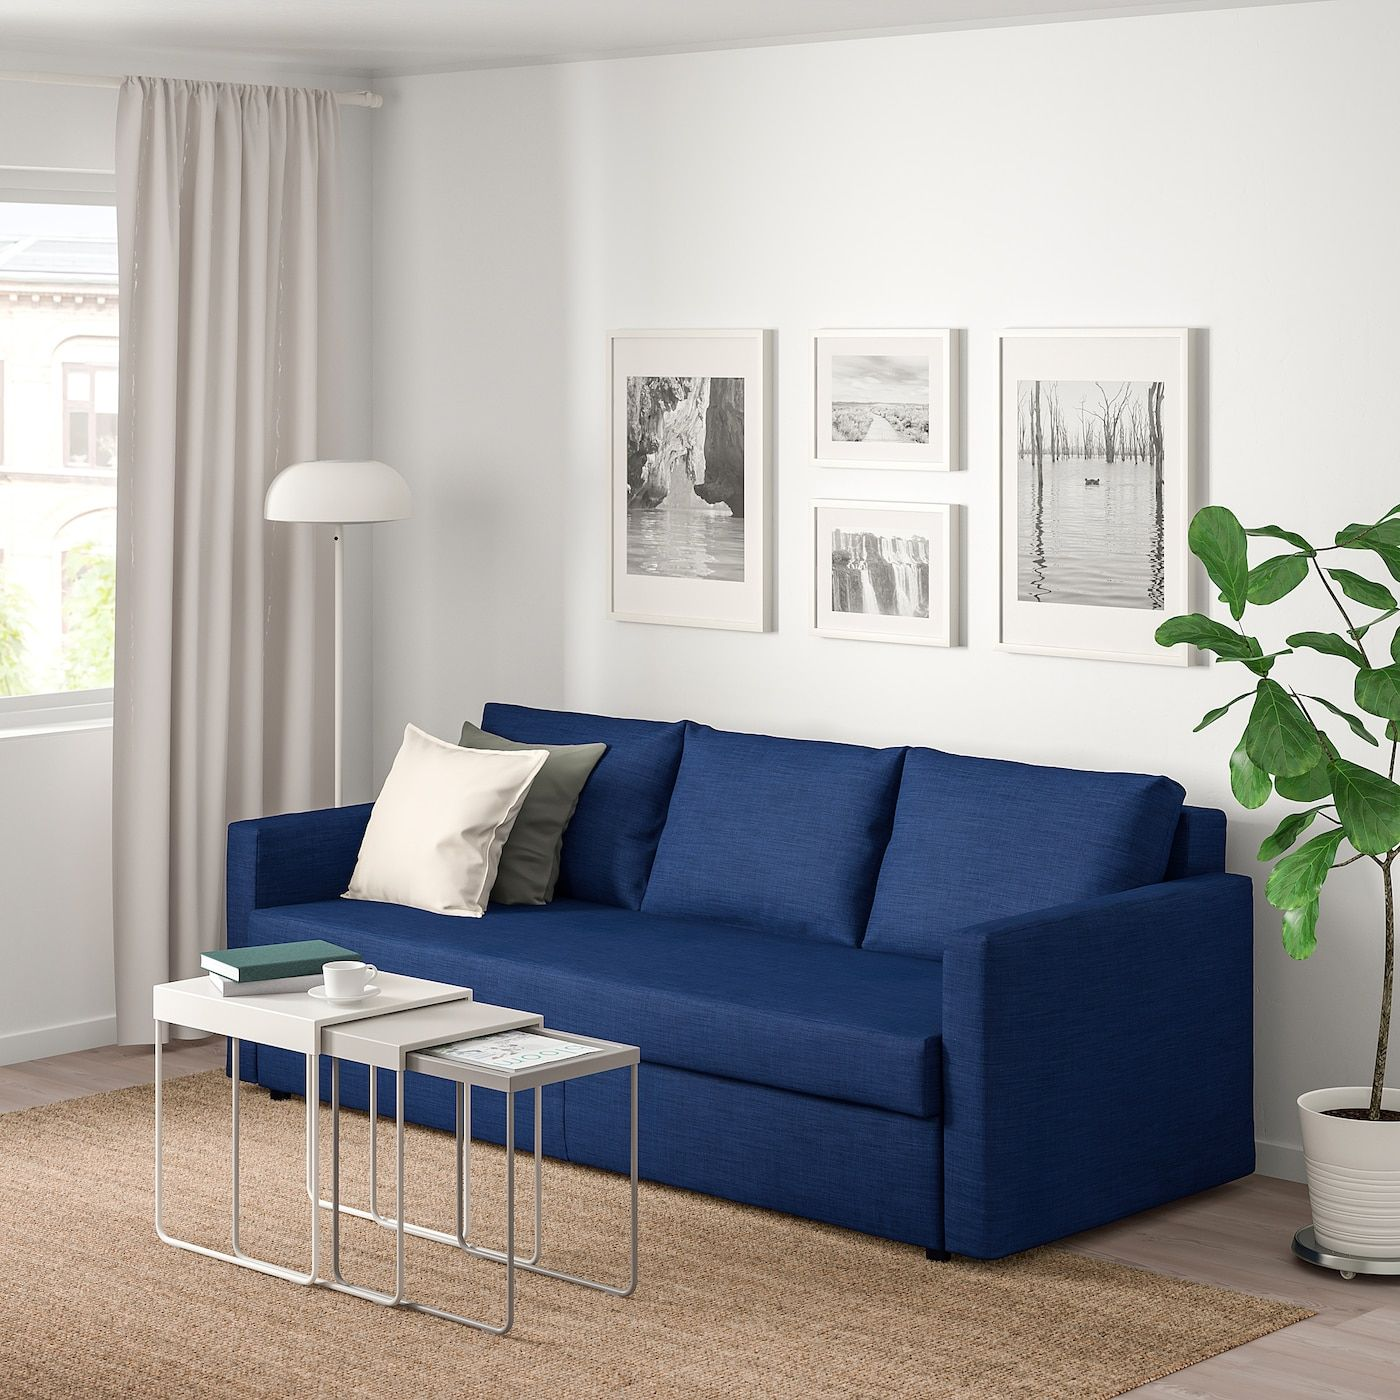 Friheten Sleeper Sofa Skiftebo Blue Corner Sofa Bed With Storage Corner Sofa Bed Sofa Bed